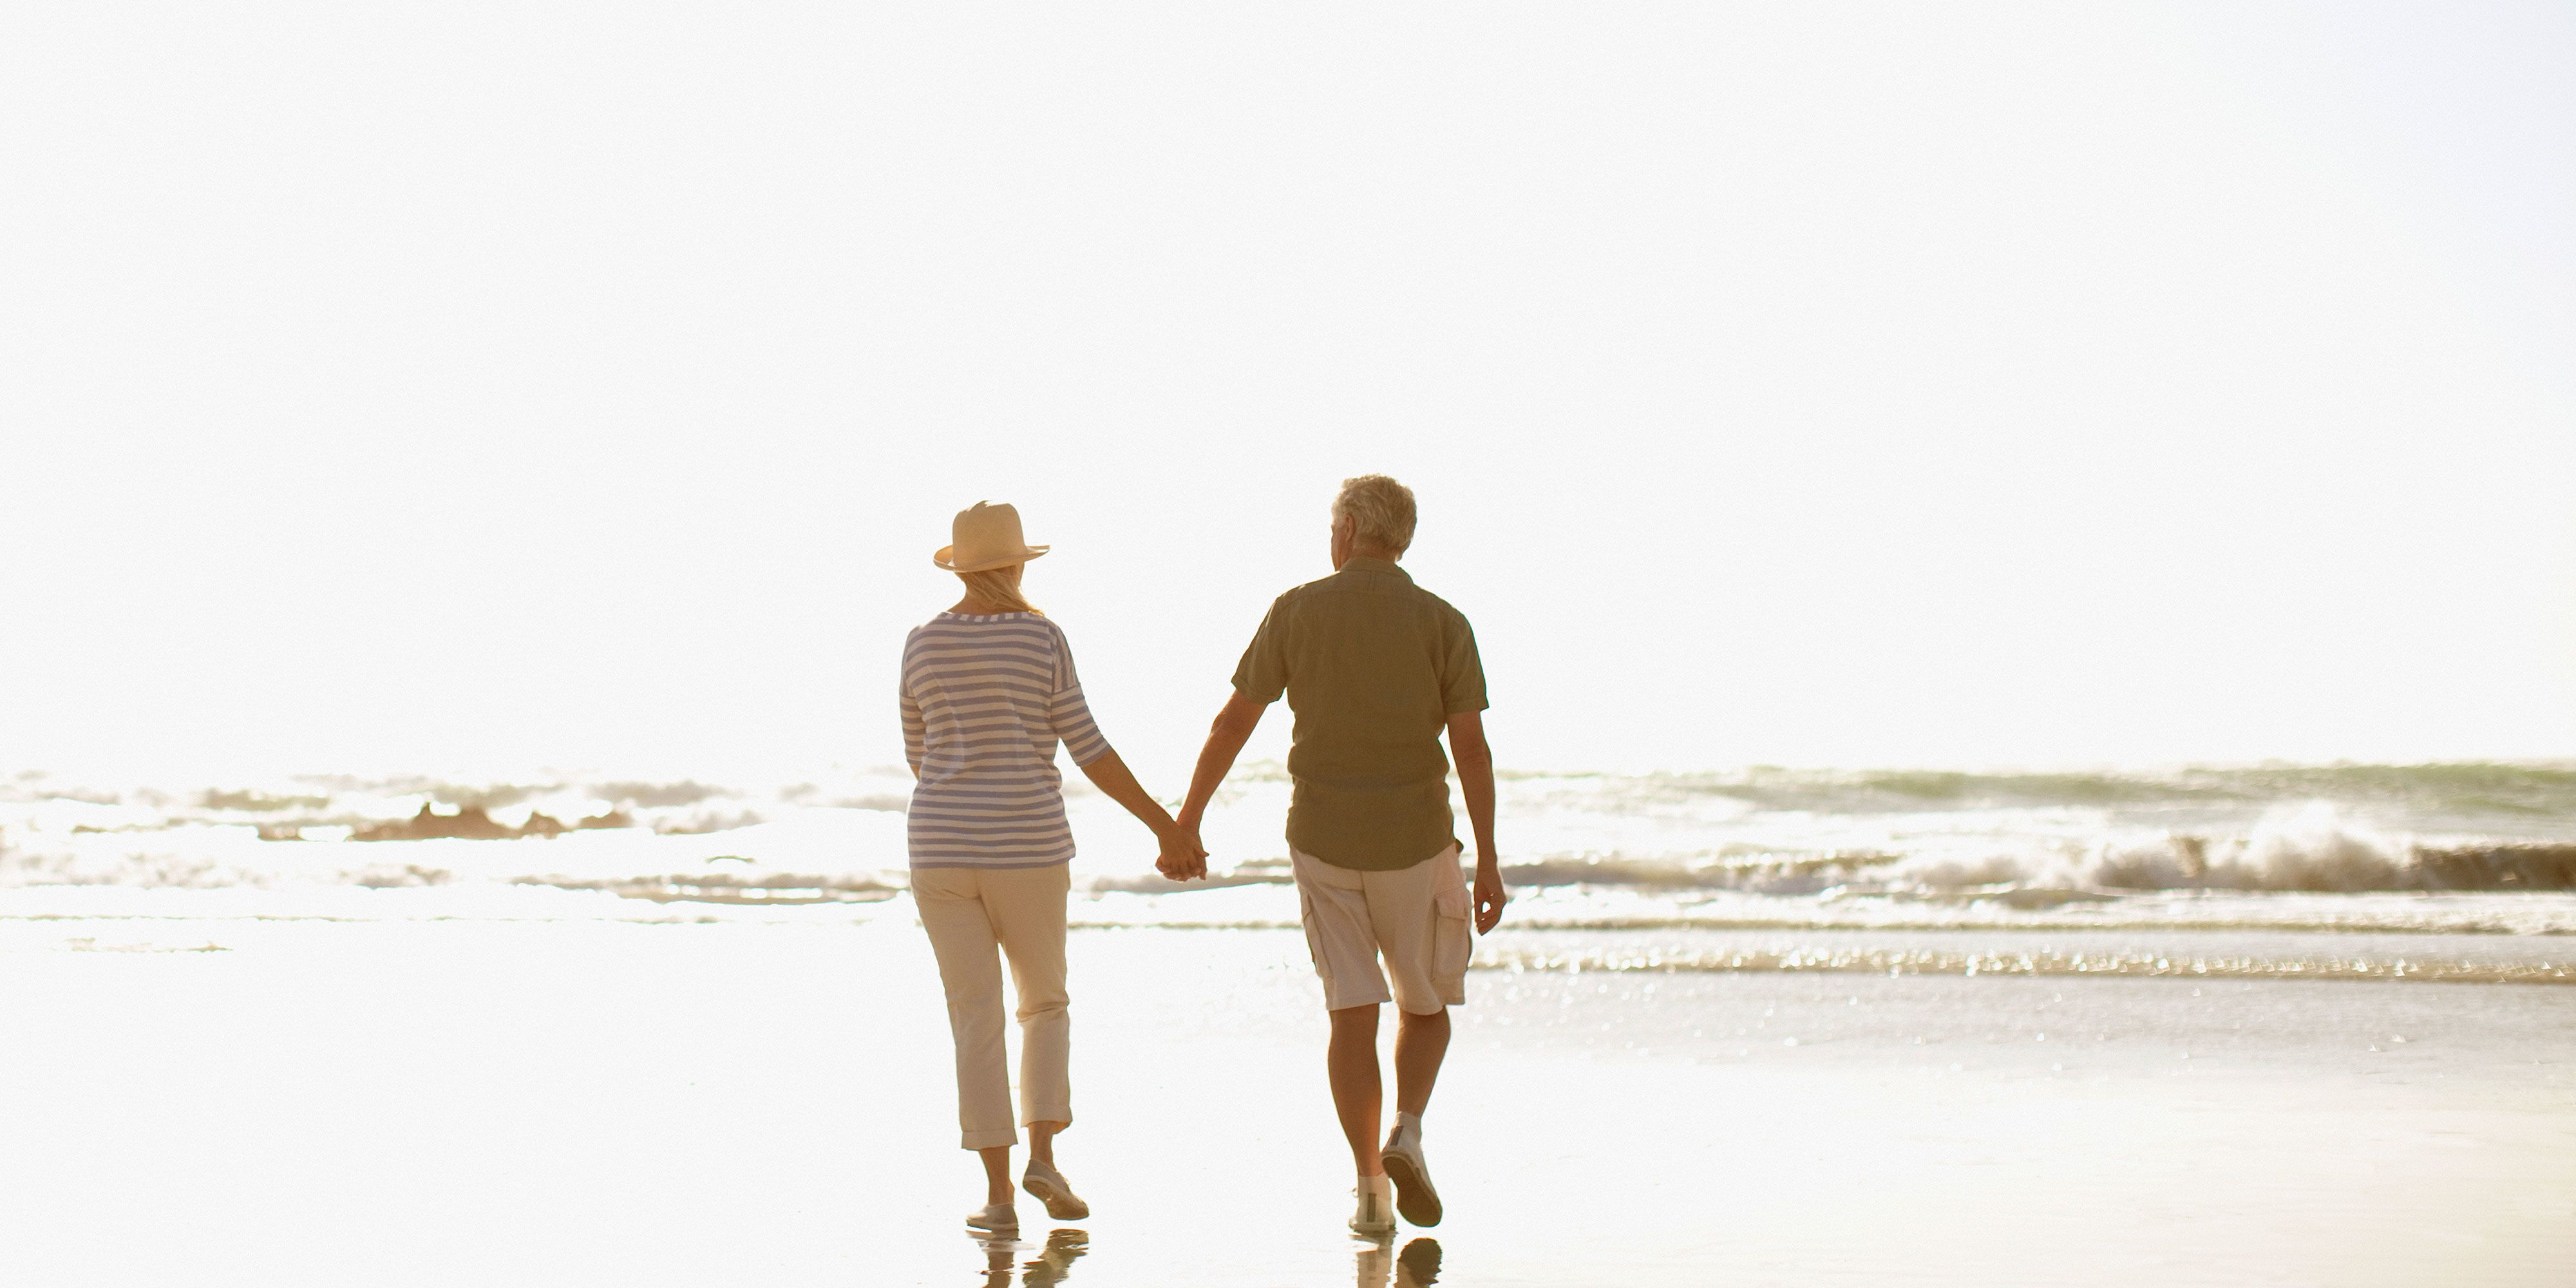 Falling in love with a widowed man